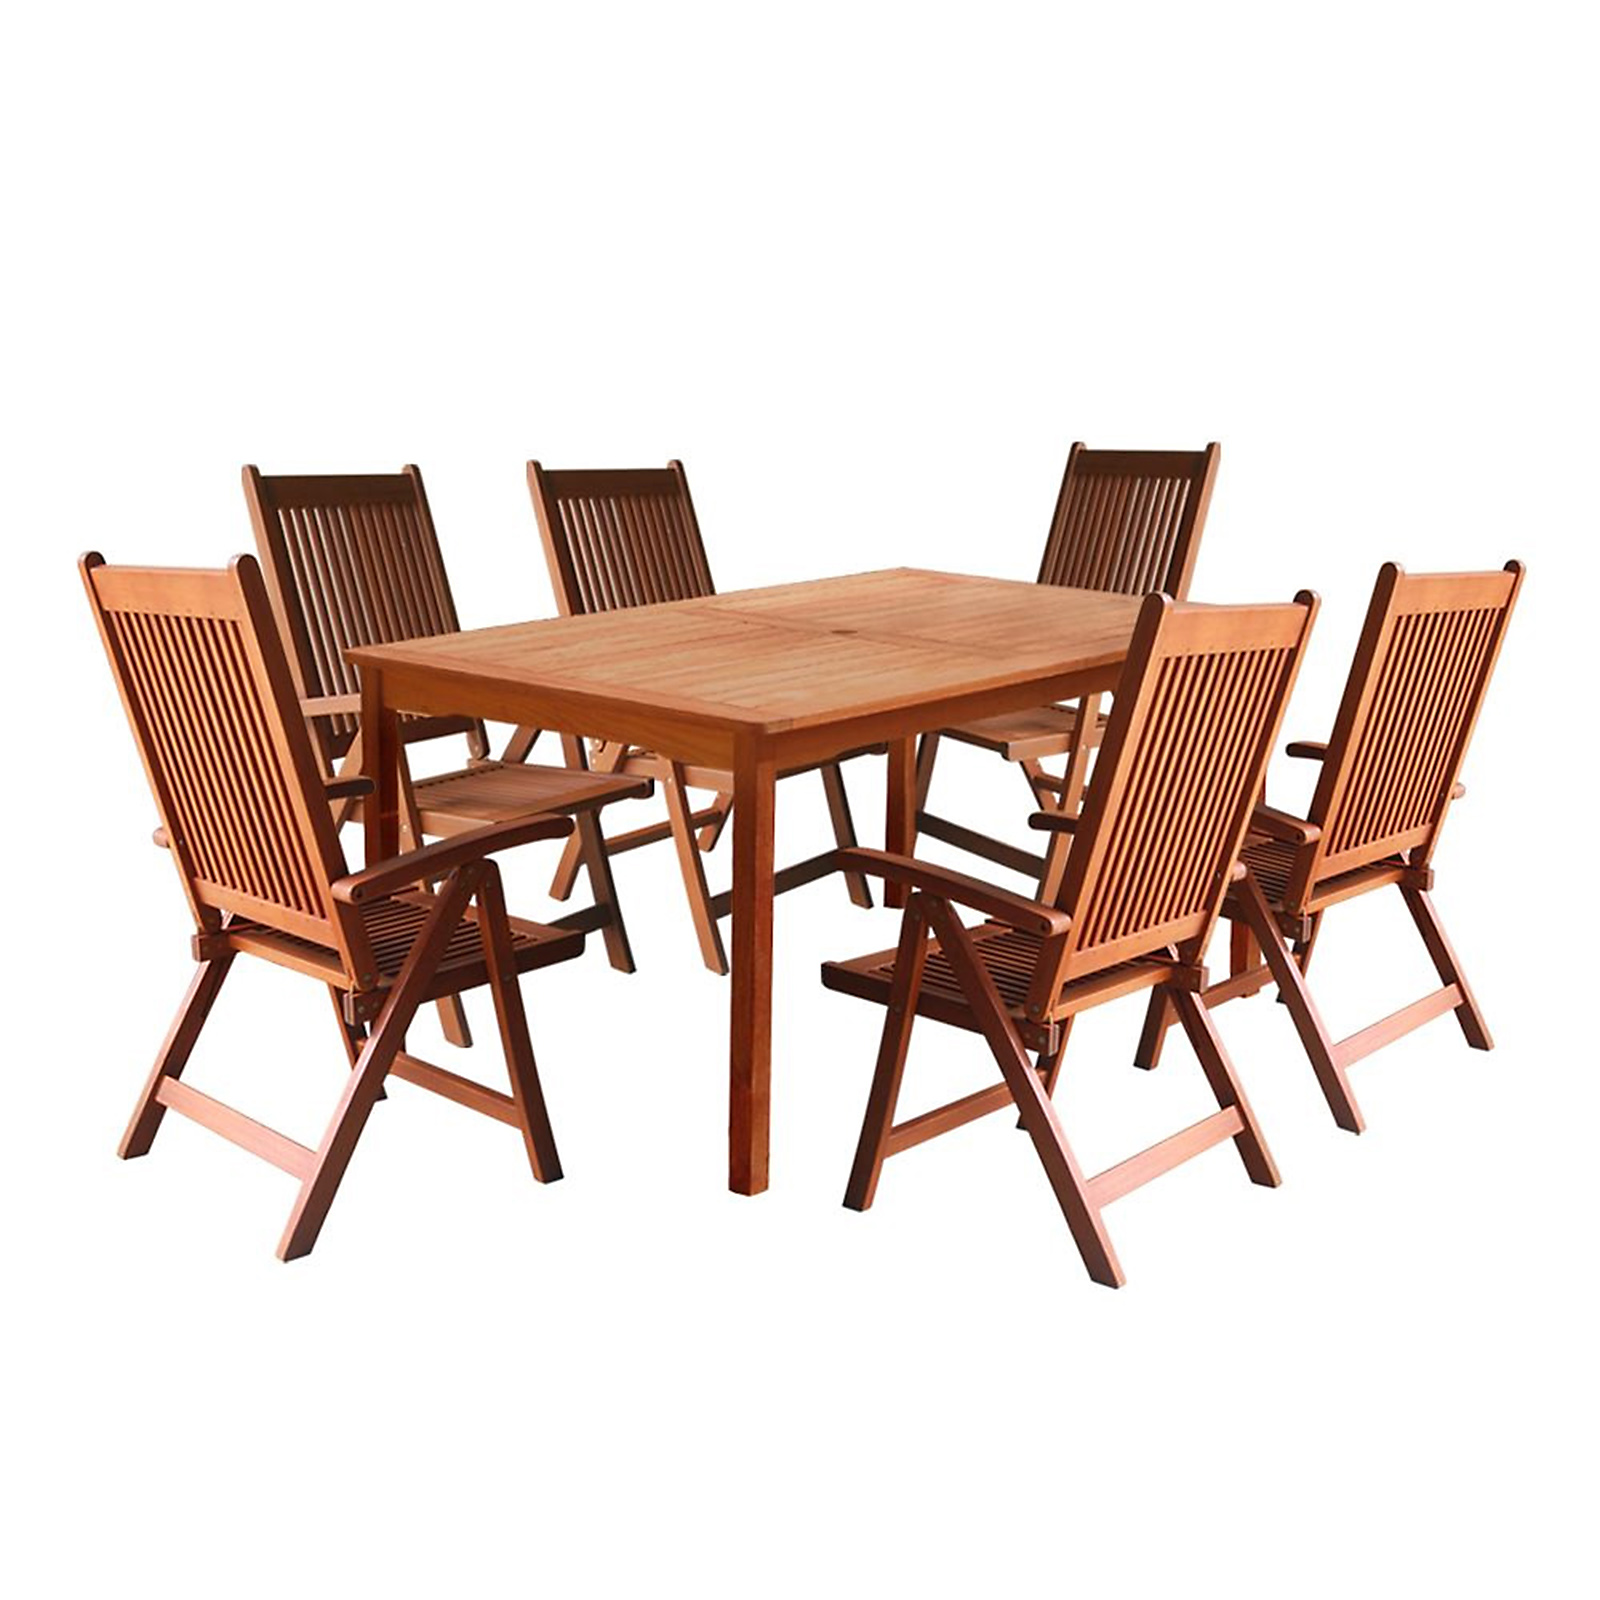 reclining patio chairs and table dark green chair cushions vifah balthazar 7pc dining set with 5 foot 6